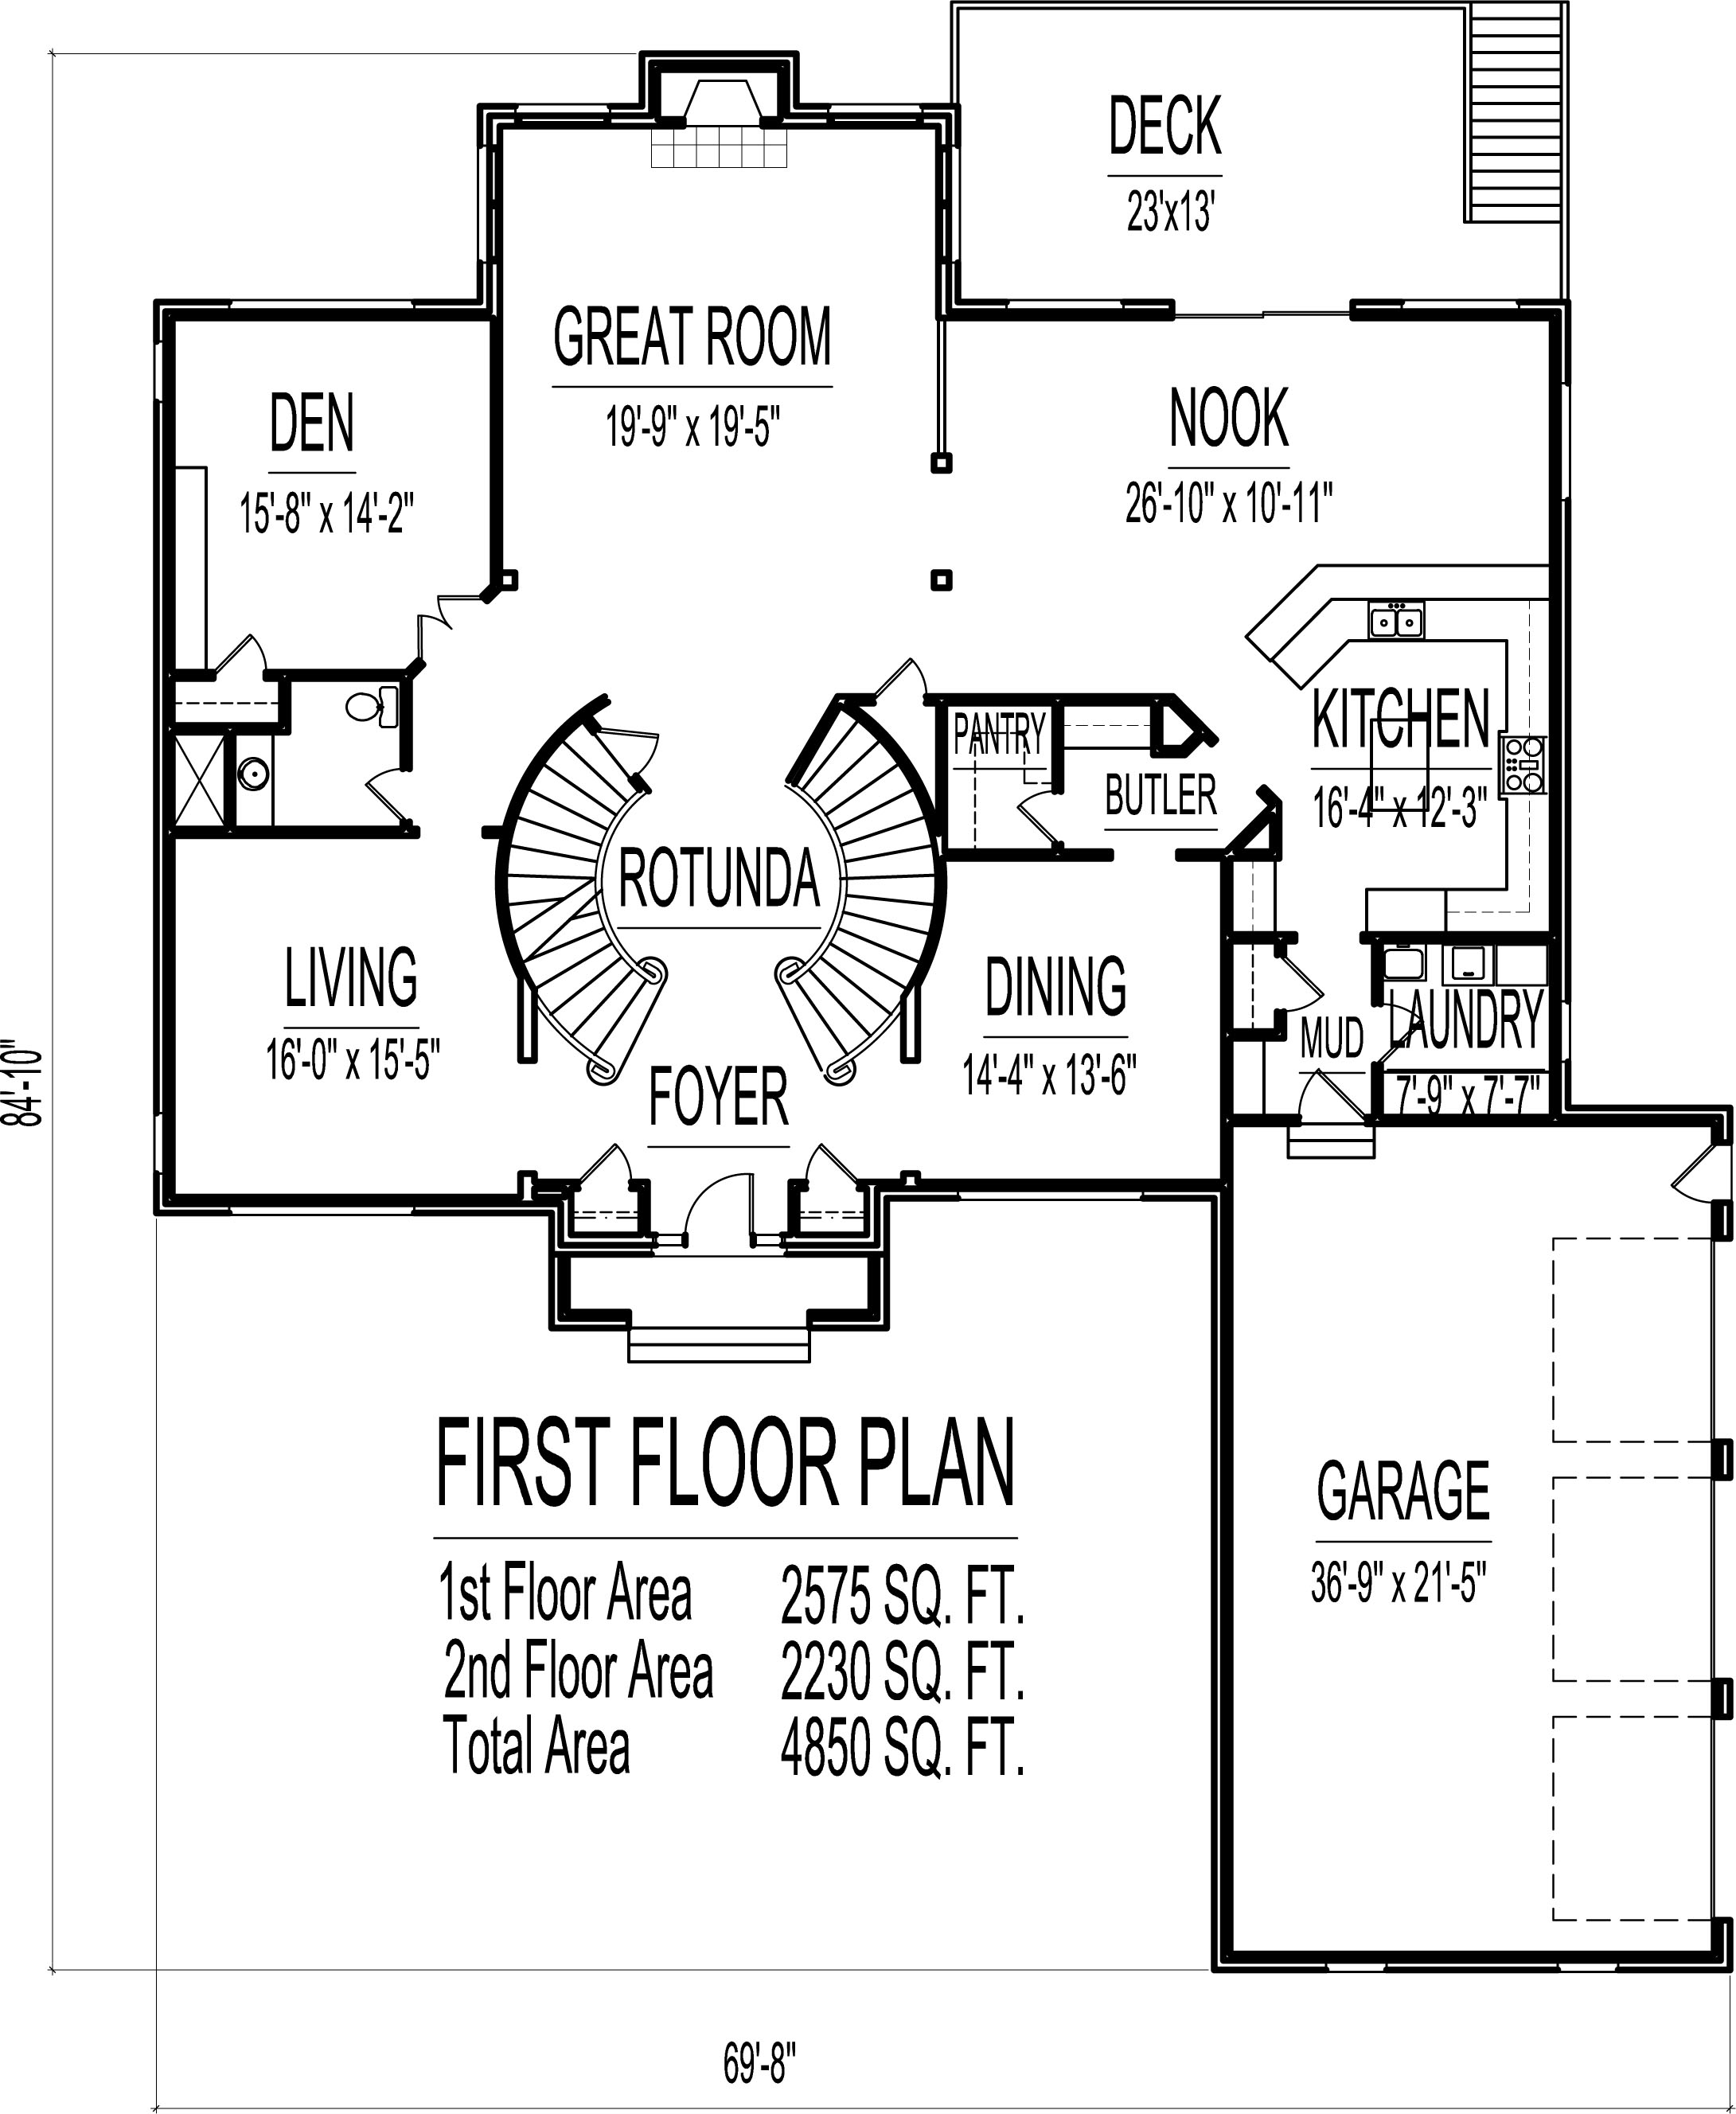 4 Bedroom 2 Story House Plans 4500 Sq Ft Chicago Peoria Springfield  Illinois Rockford Champaign Bloomington